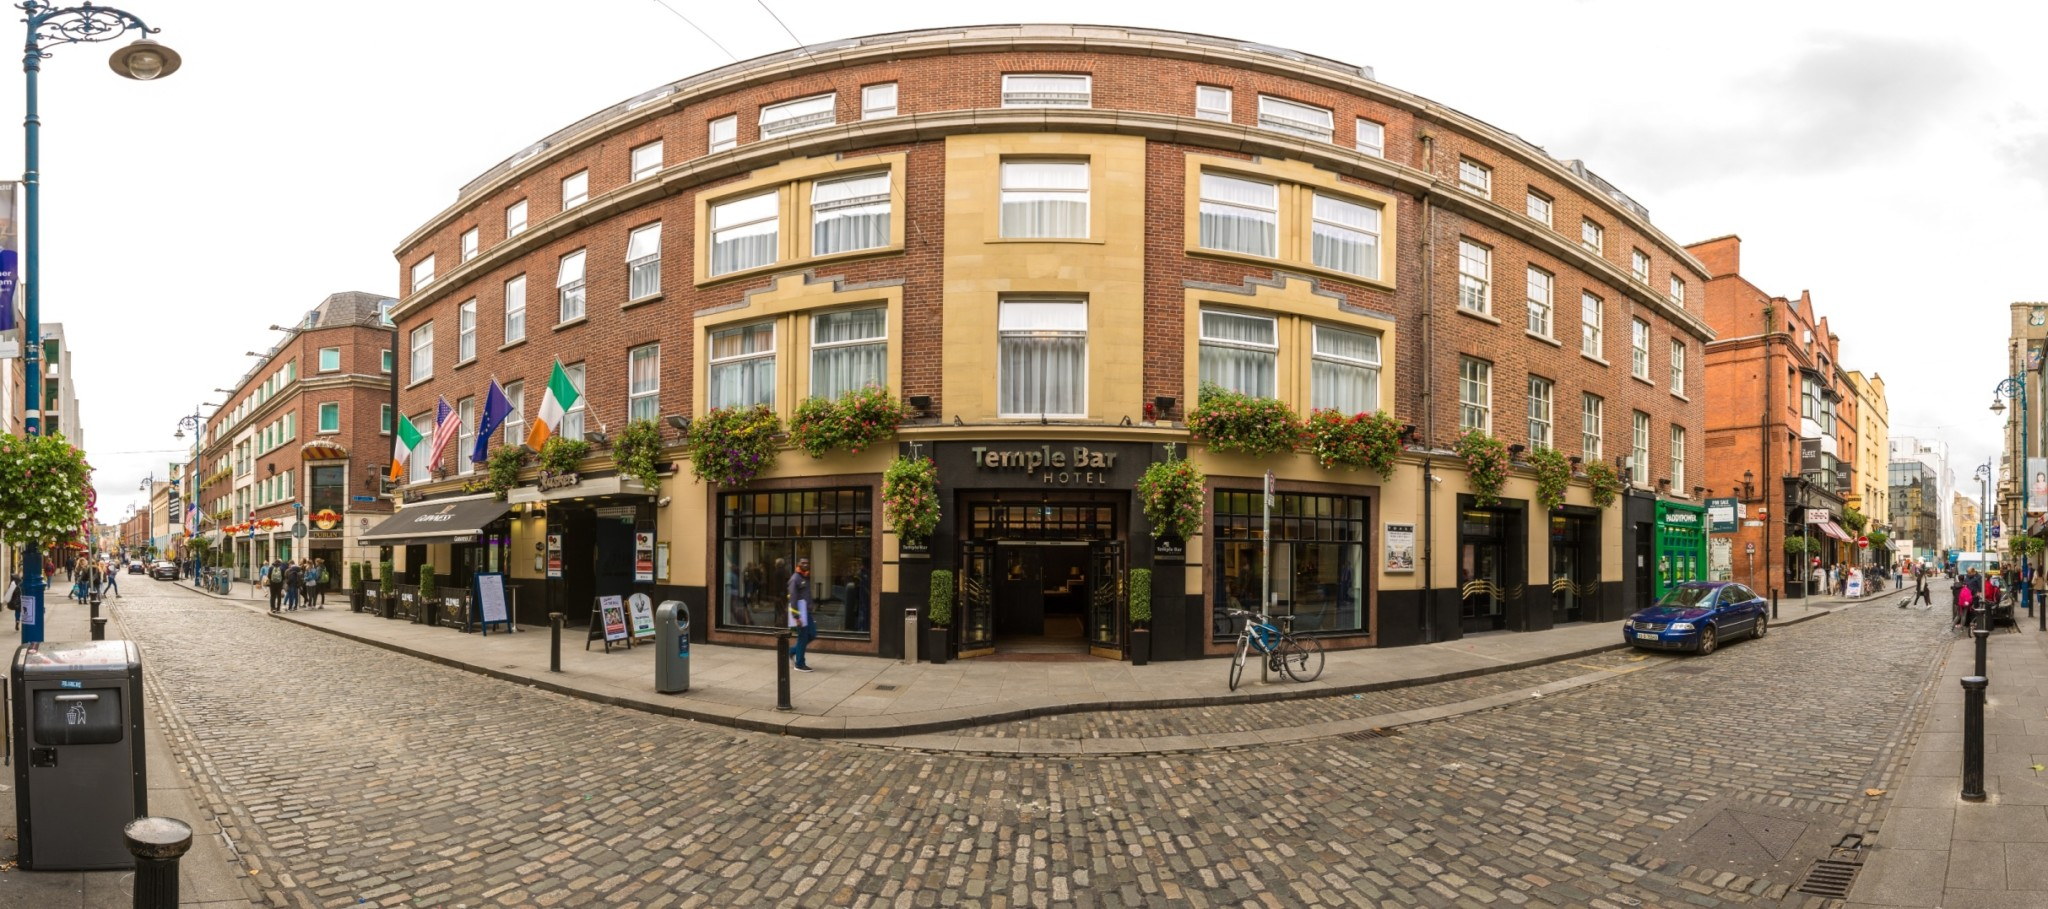 Temple Bar Hotel Exterior -Pano (resized)